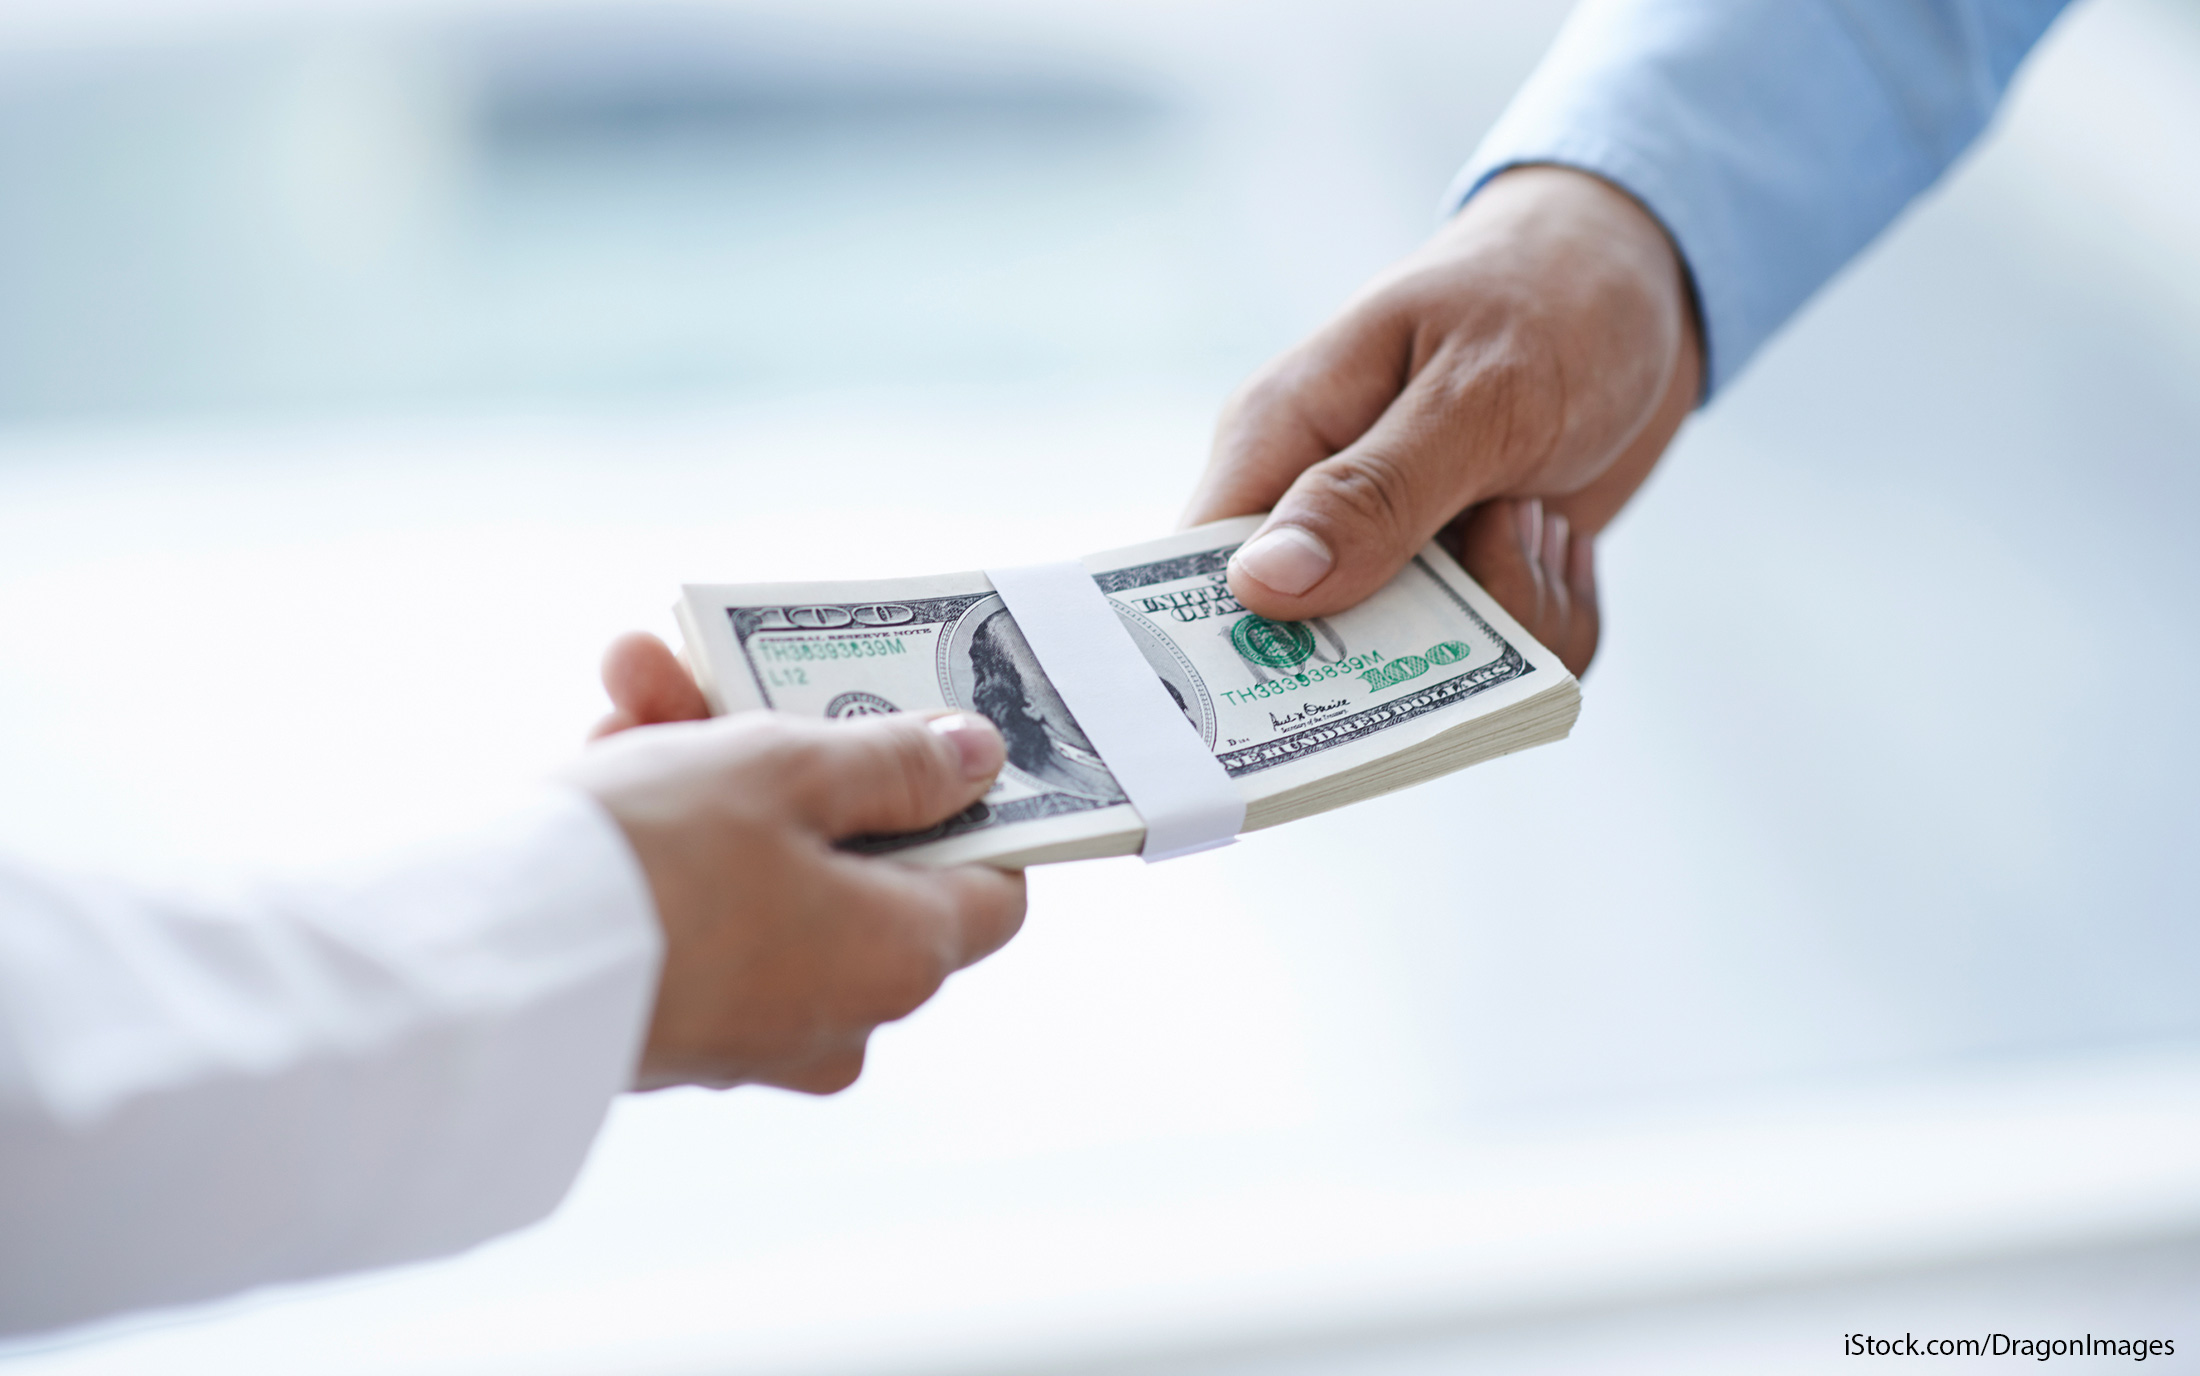 Instant Personal Loan for Any Reason